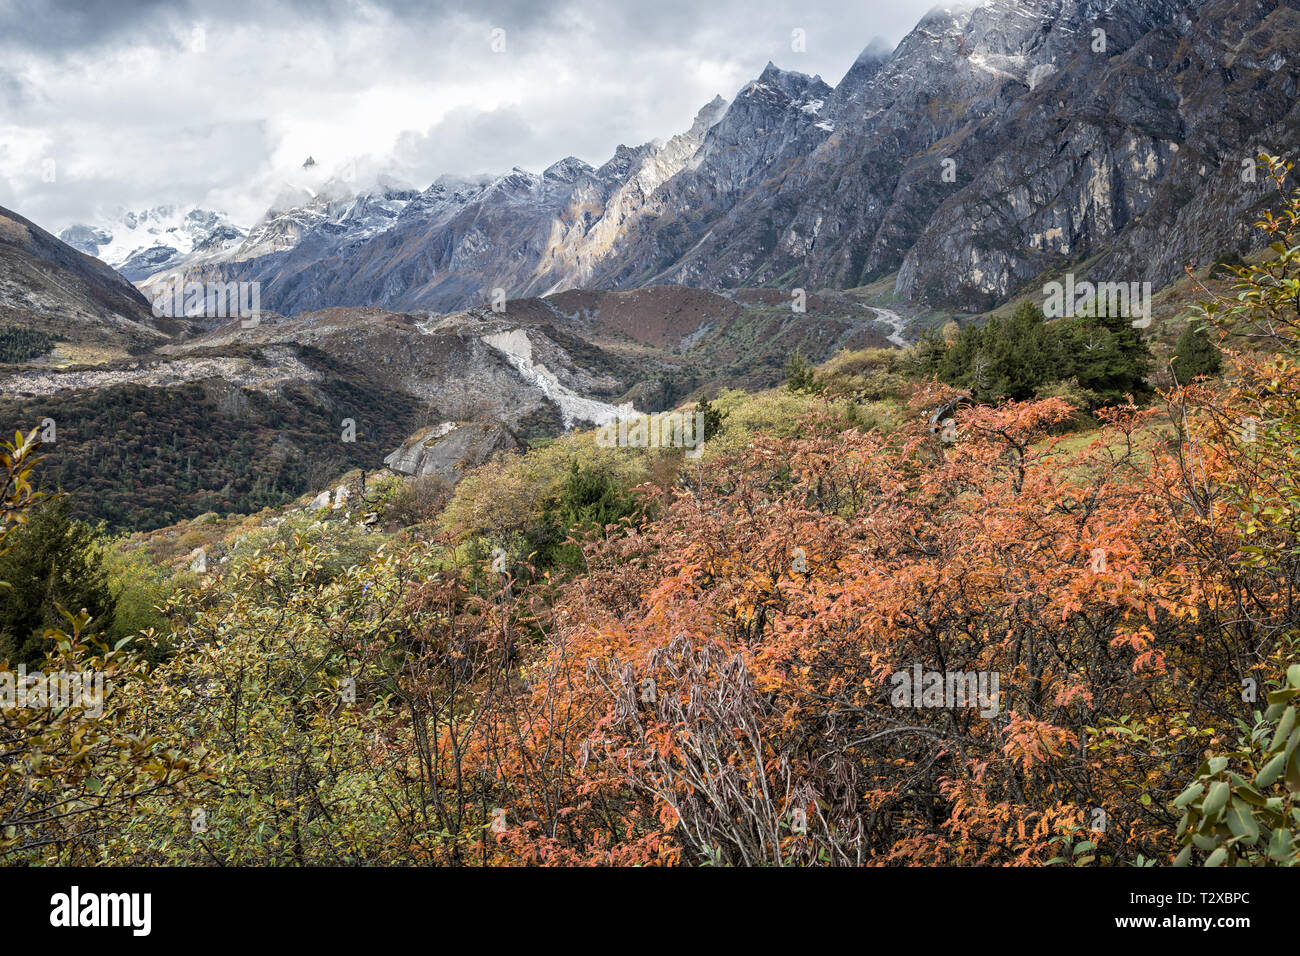 Mountains and vegetation near Thrika camp, Gasa District, Snowman Trek, Bhutan - Stock Image